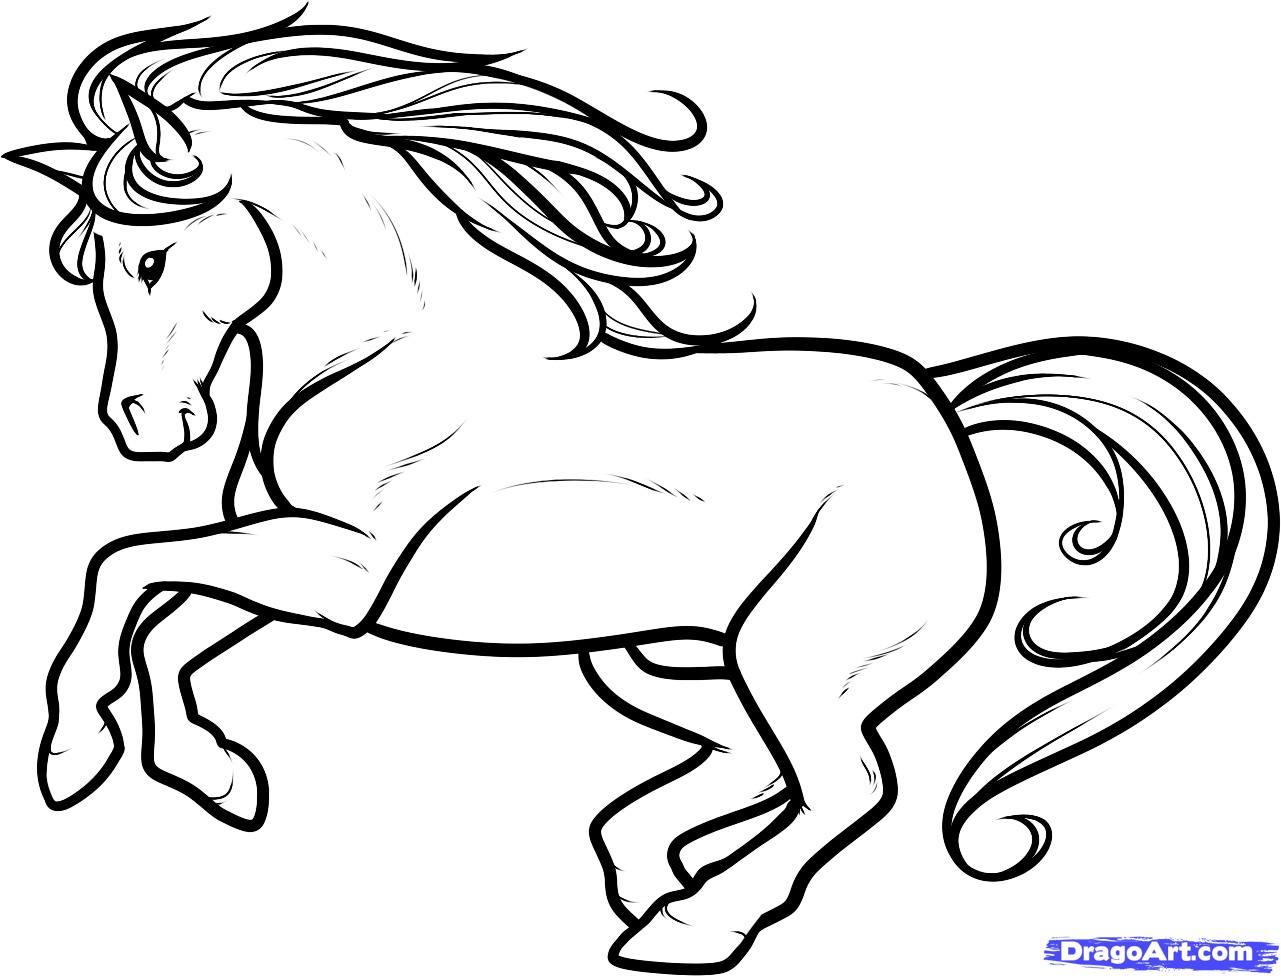 1281x976 Cartoon Horse Drawings Cartoon Black And White Horse Collection